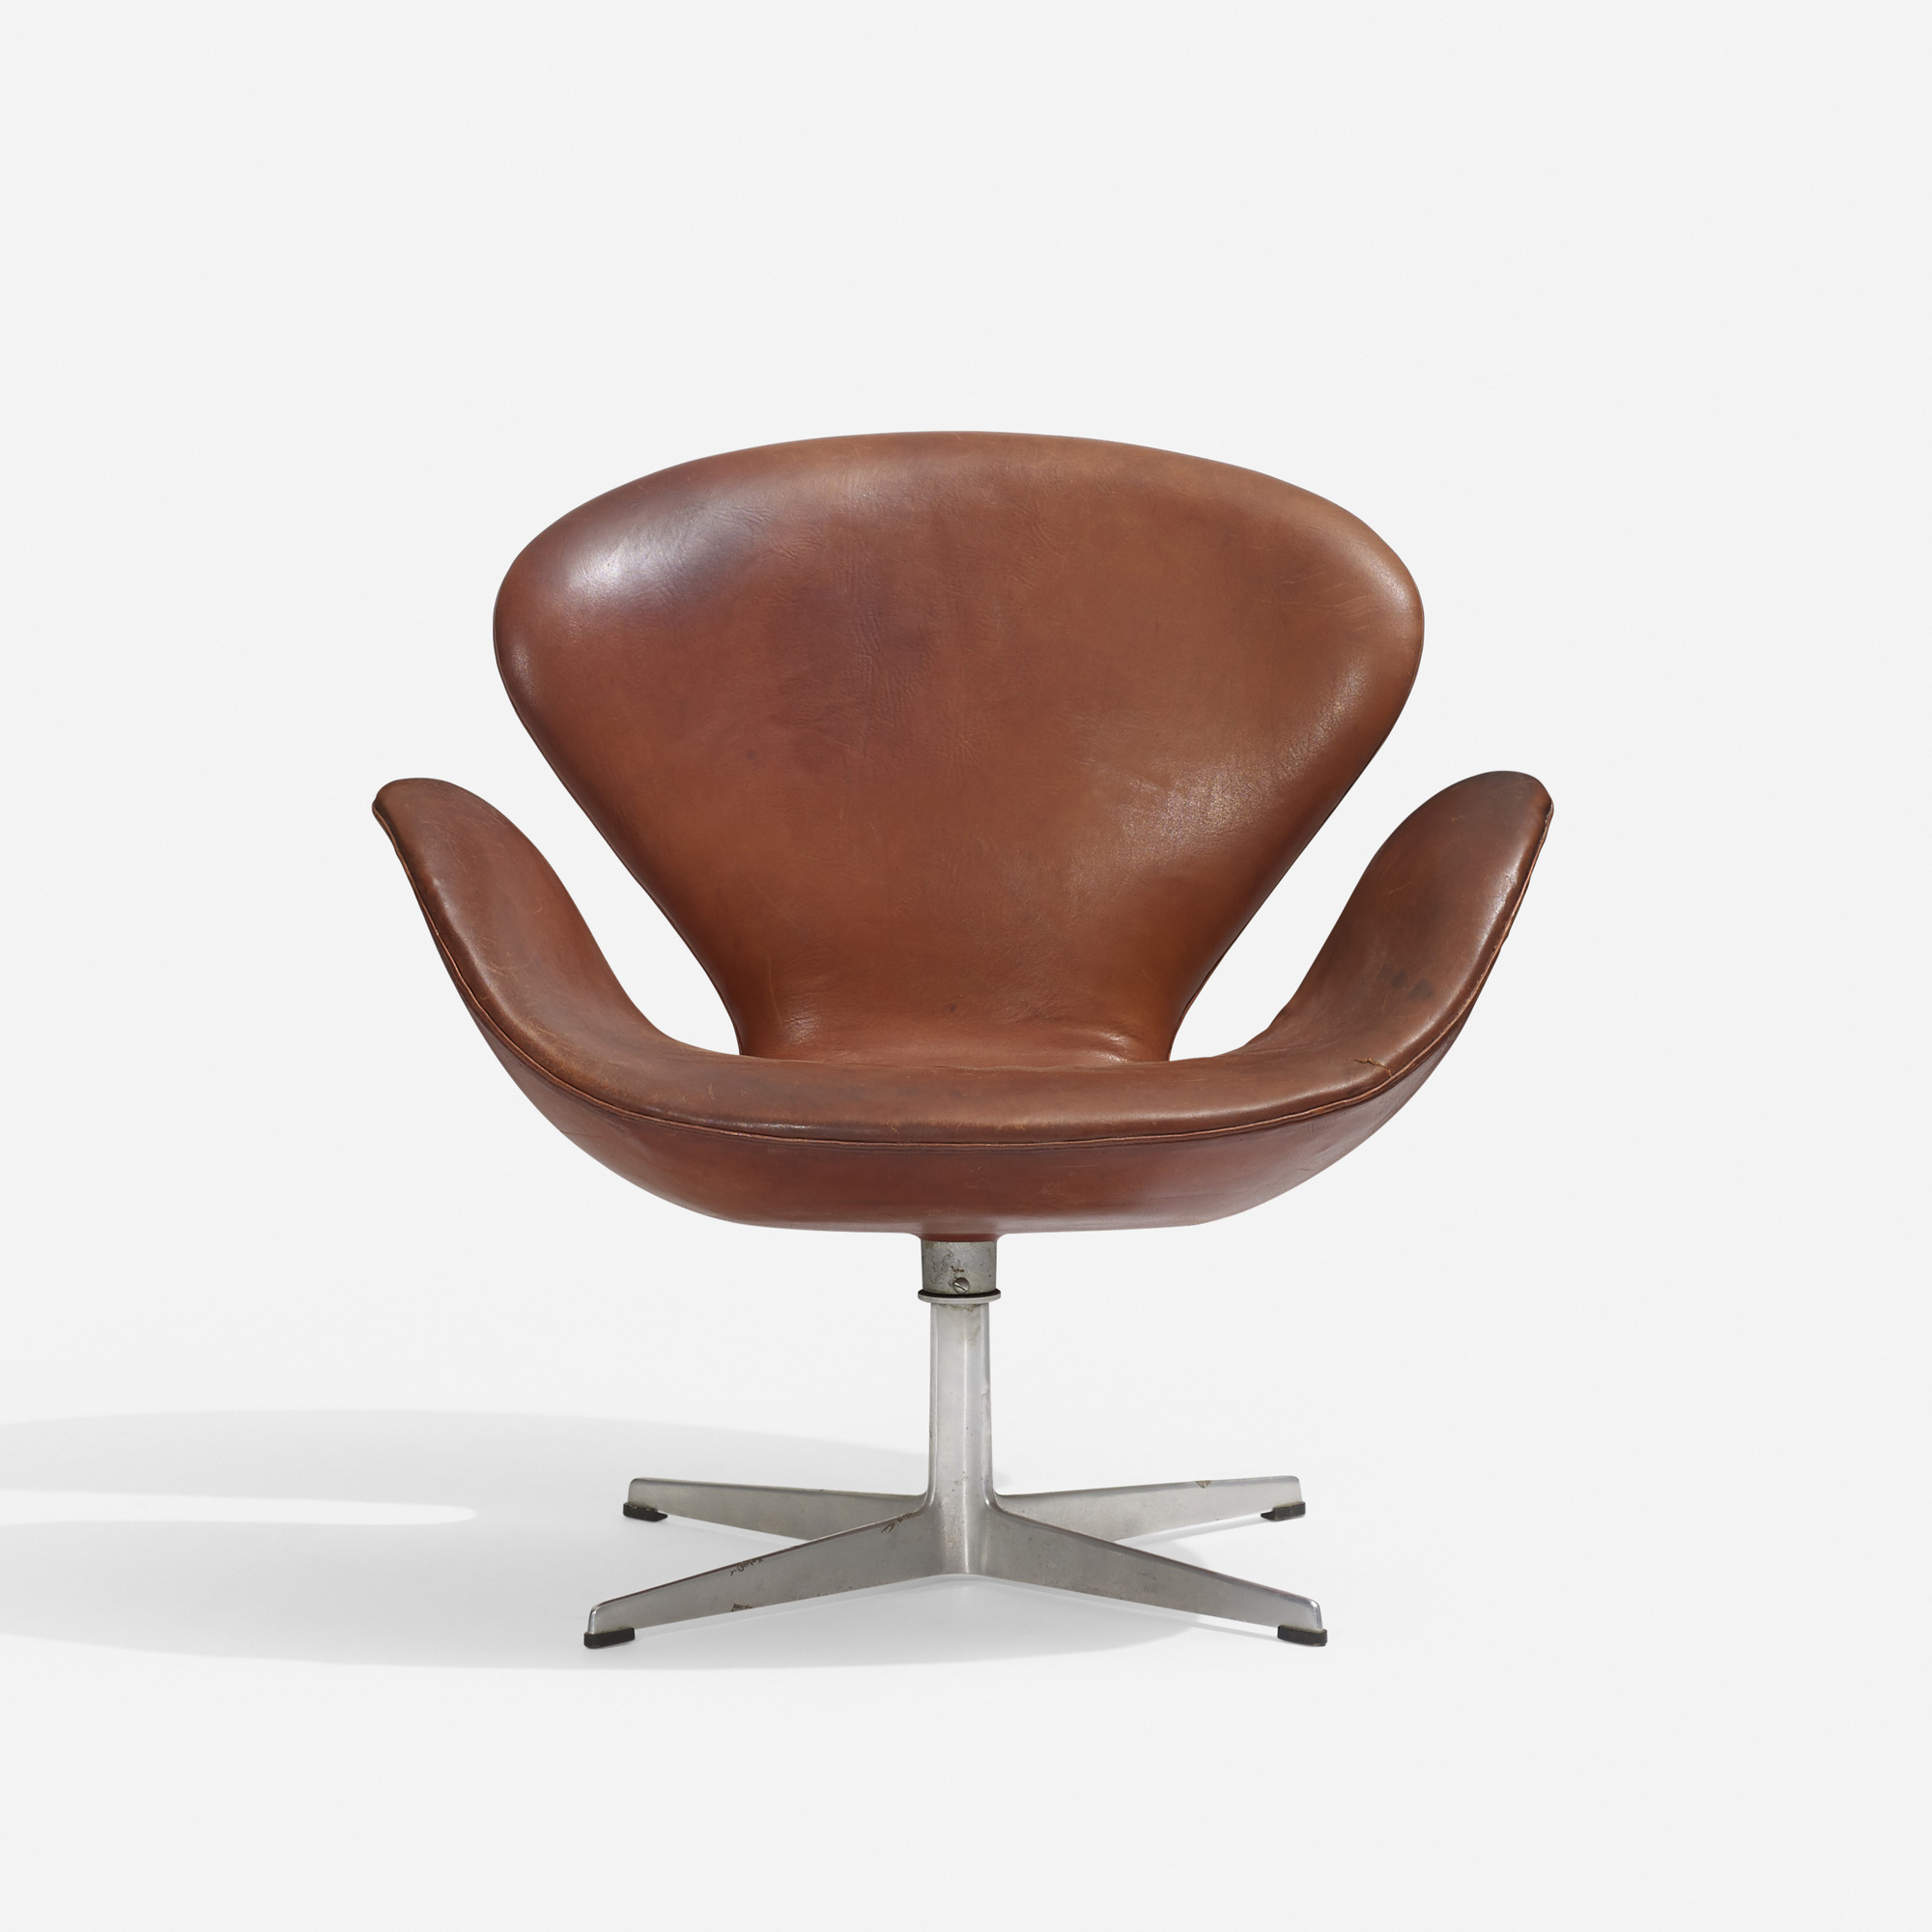 Arne Jacobsen Swan Chair 145: Arne Jacobsen, Swan Chair